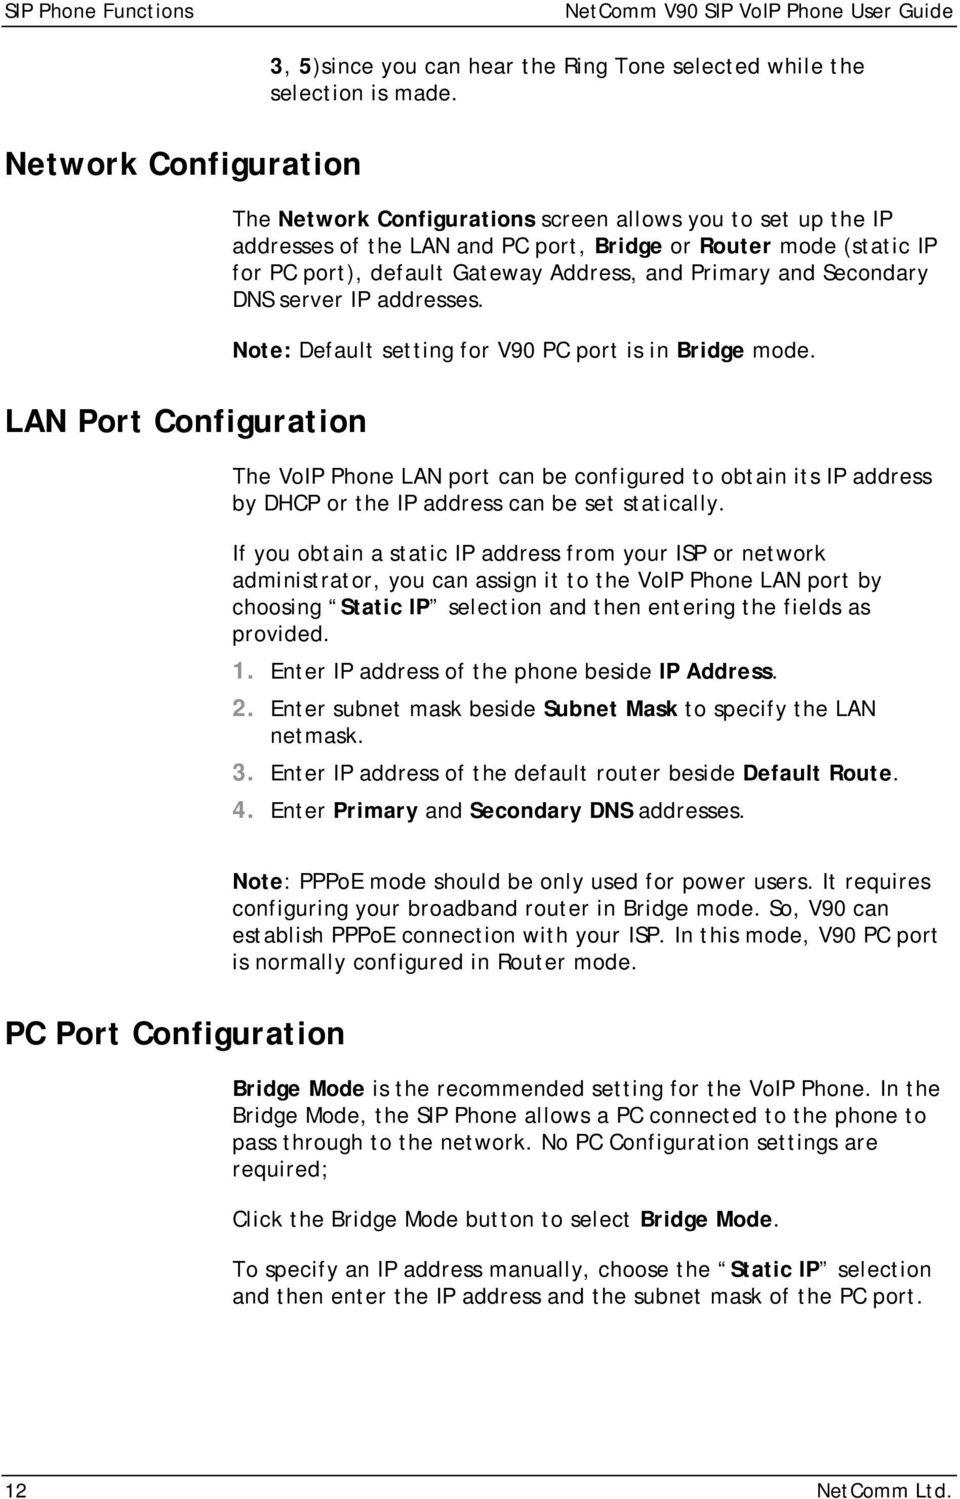 Primary and Secondary DNS server IP addresses. Note: Default setting for V90 PC port is in Bridge mode.